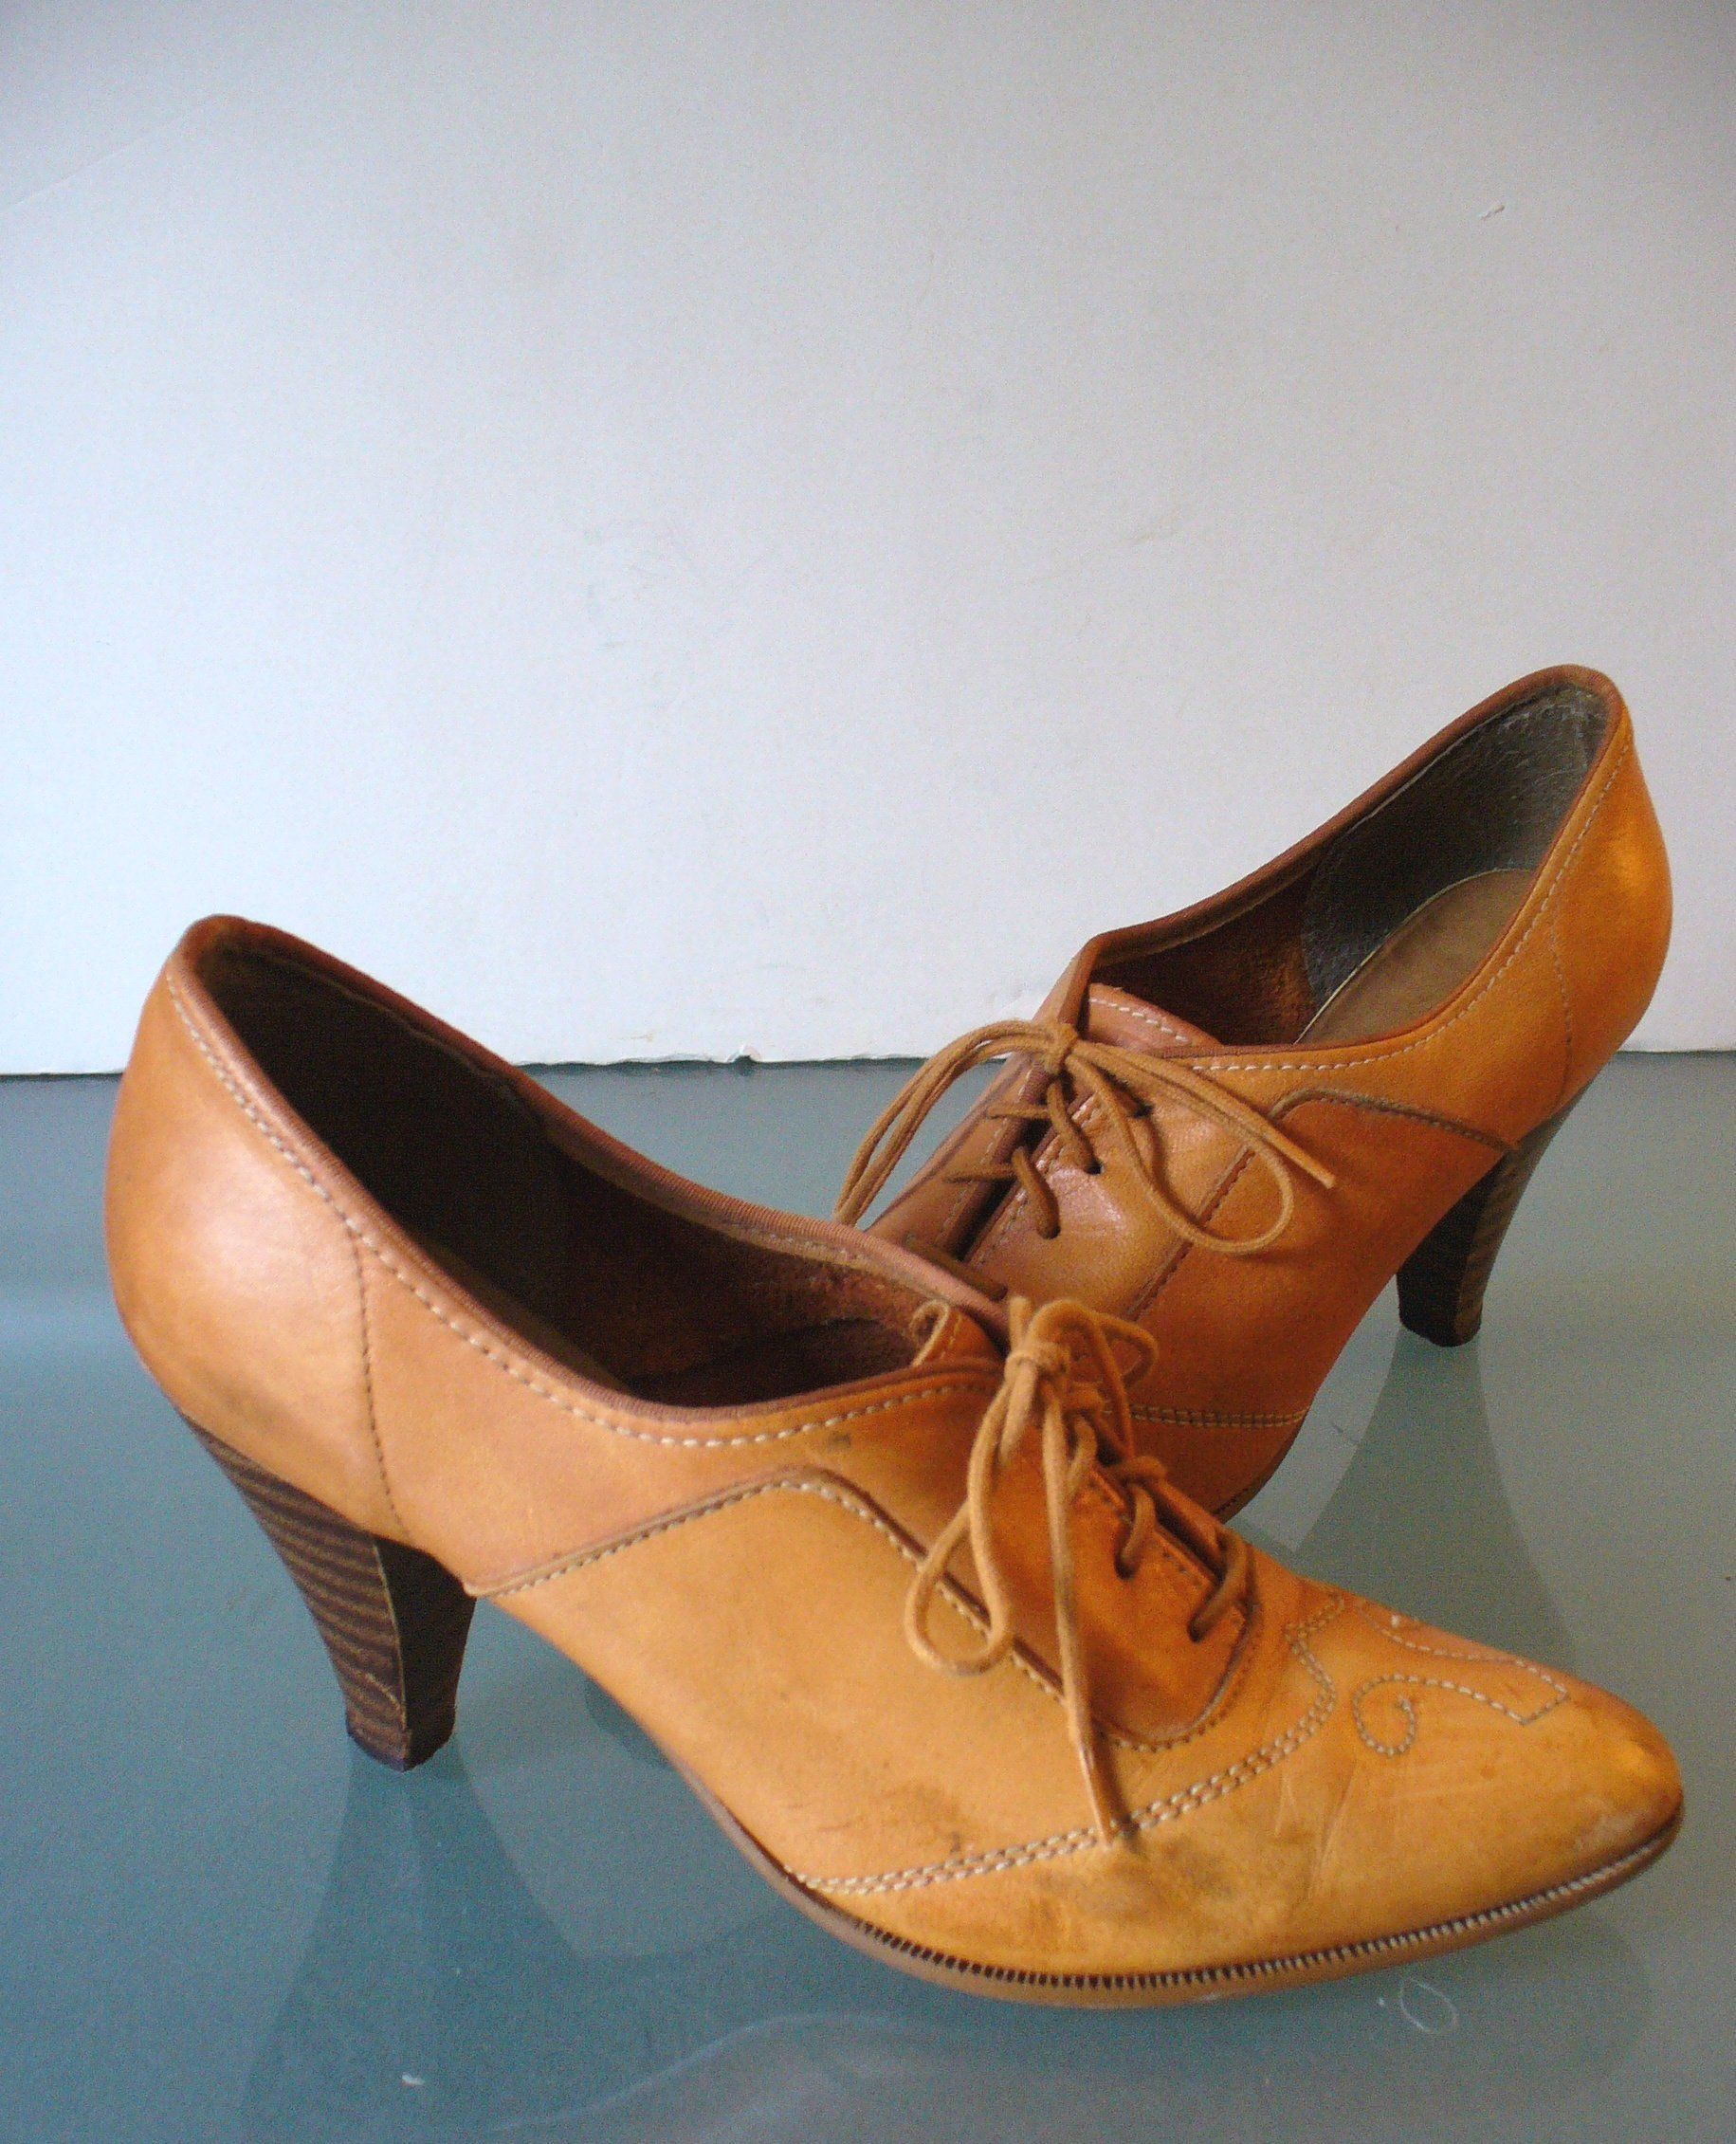 Vintage Fred Braun Heeled Woman's Oxfords By